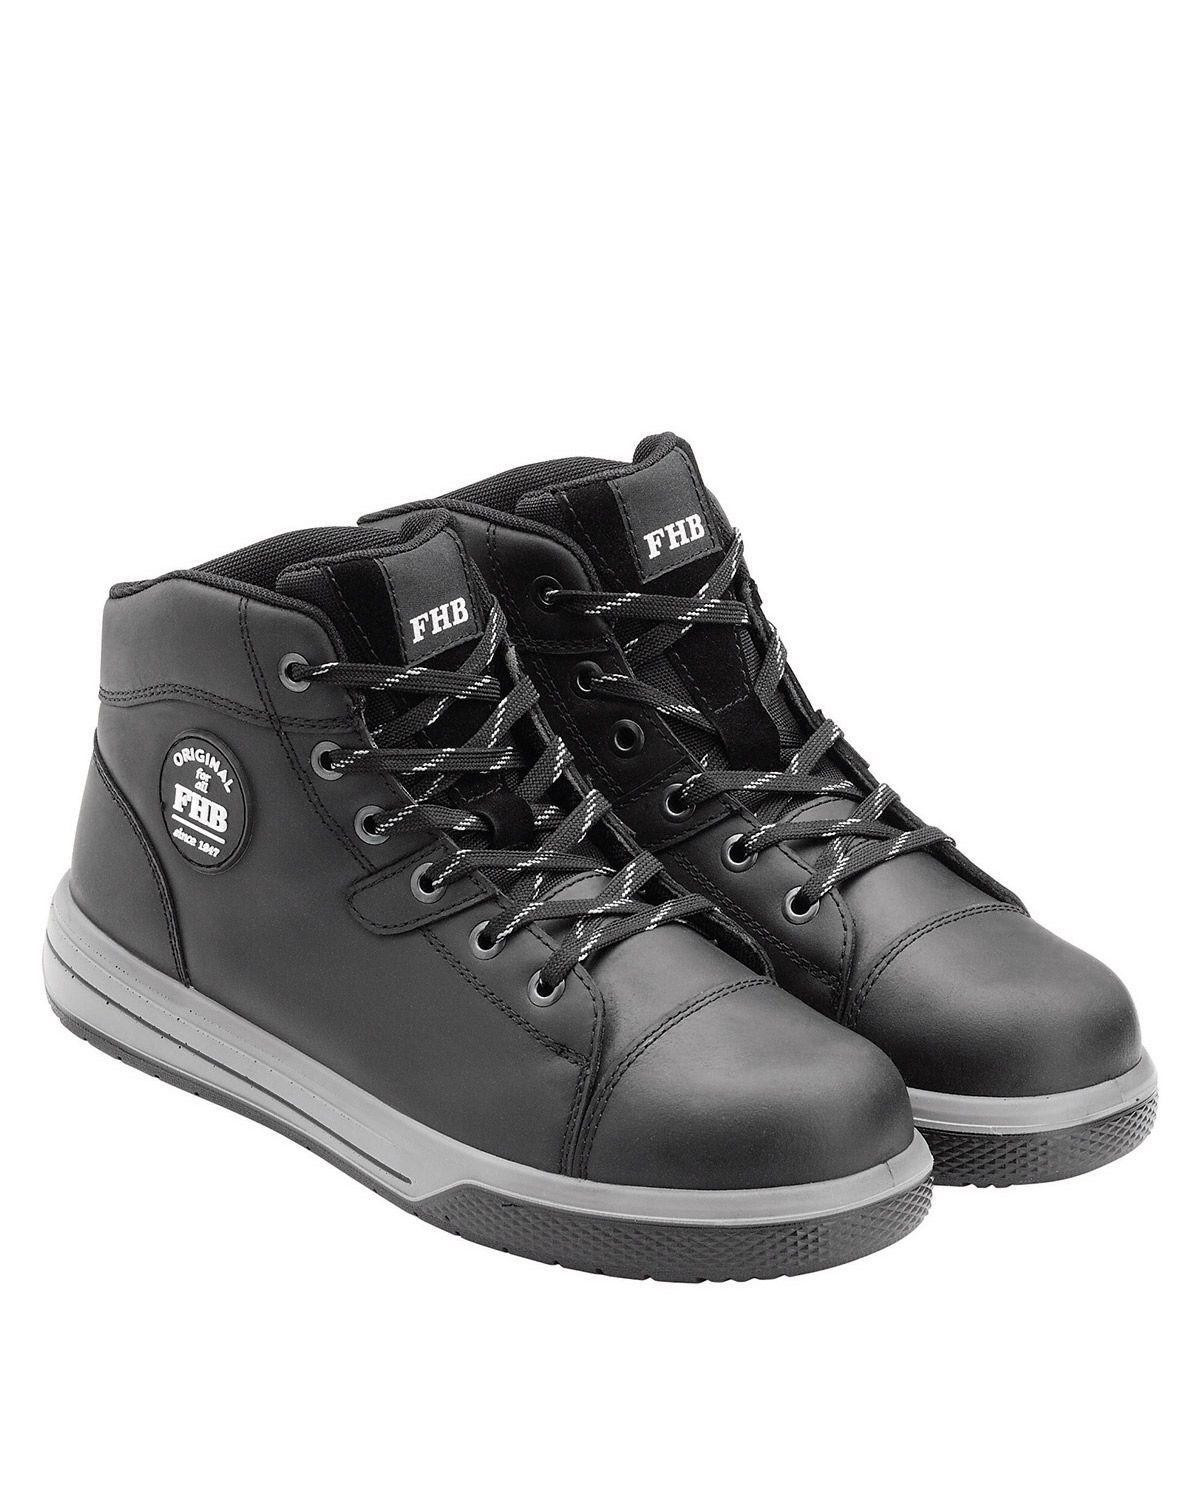 Image of   FHB High Top Sikkerhedssko - Linus (Sort, 45 EU / 11 UK)